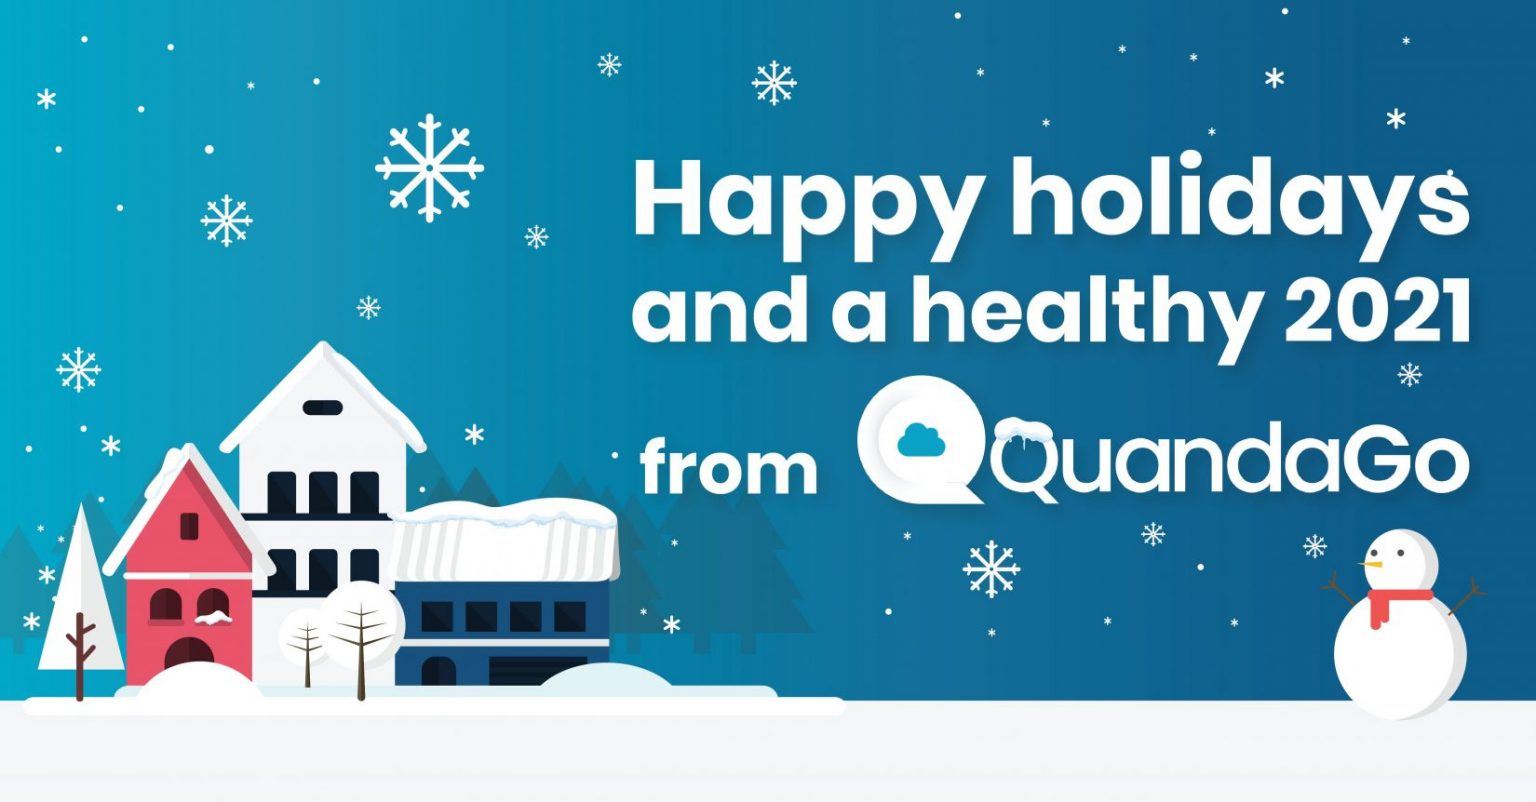 Wishing You a Healthy and Happy Holidays!